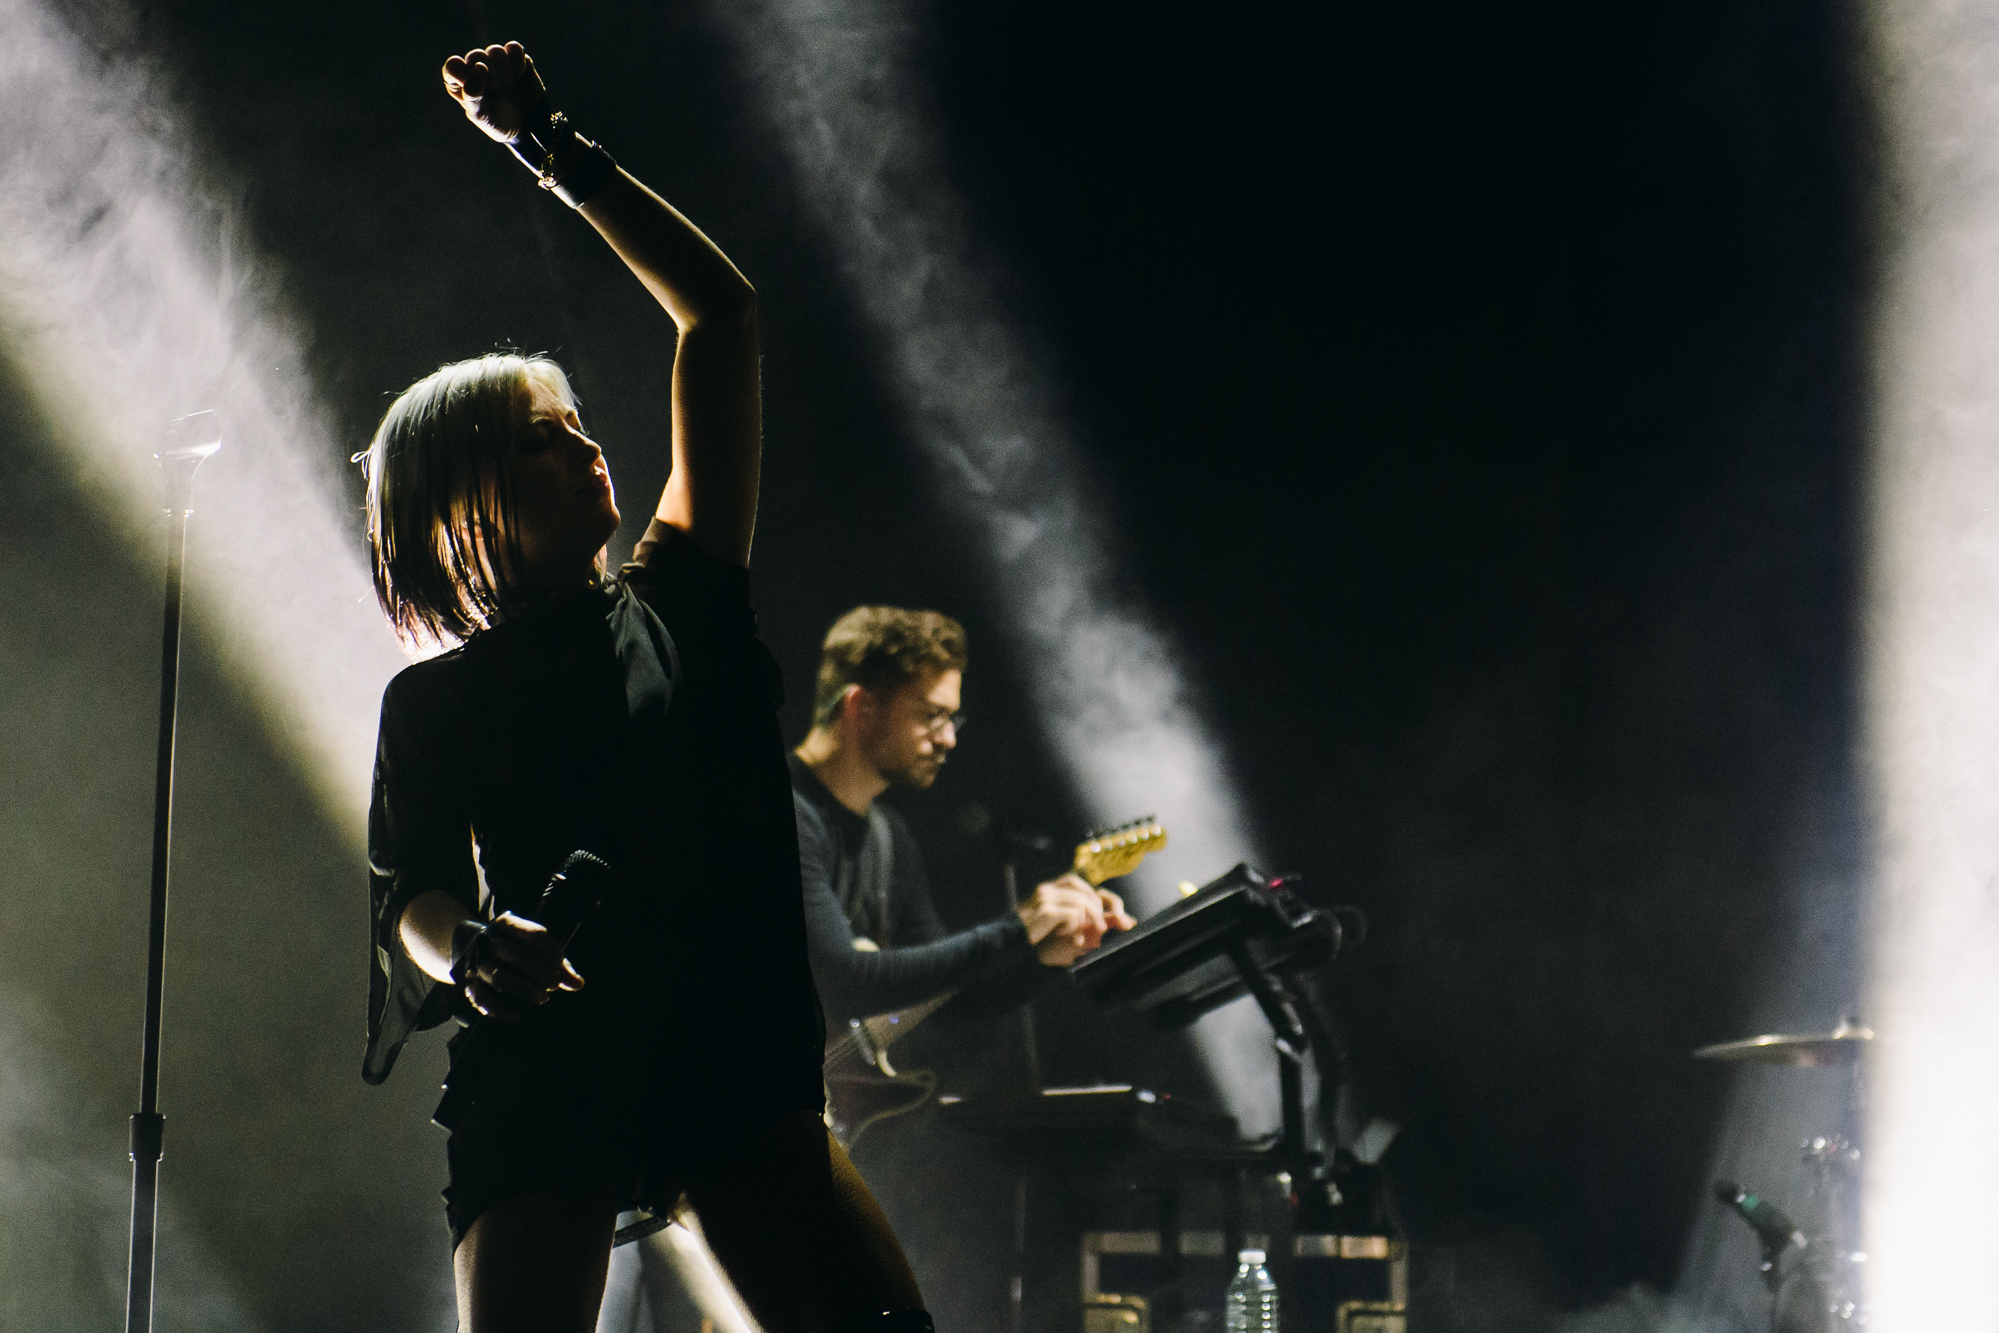 phantogram-seattle-concert-paramount-theatre-5